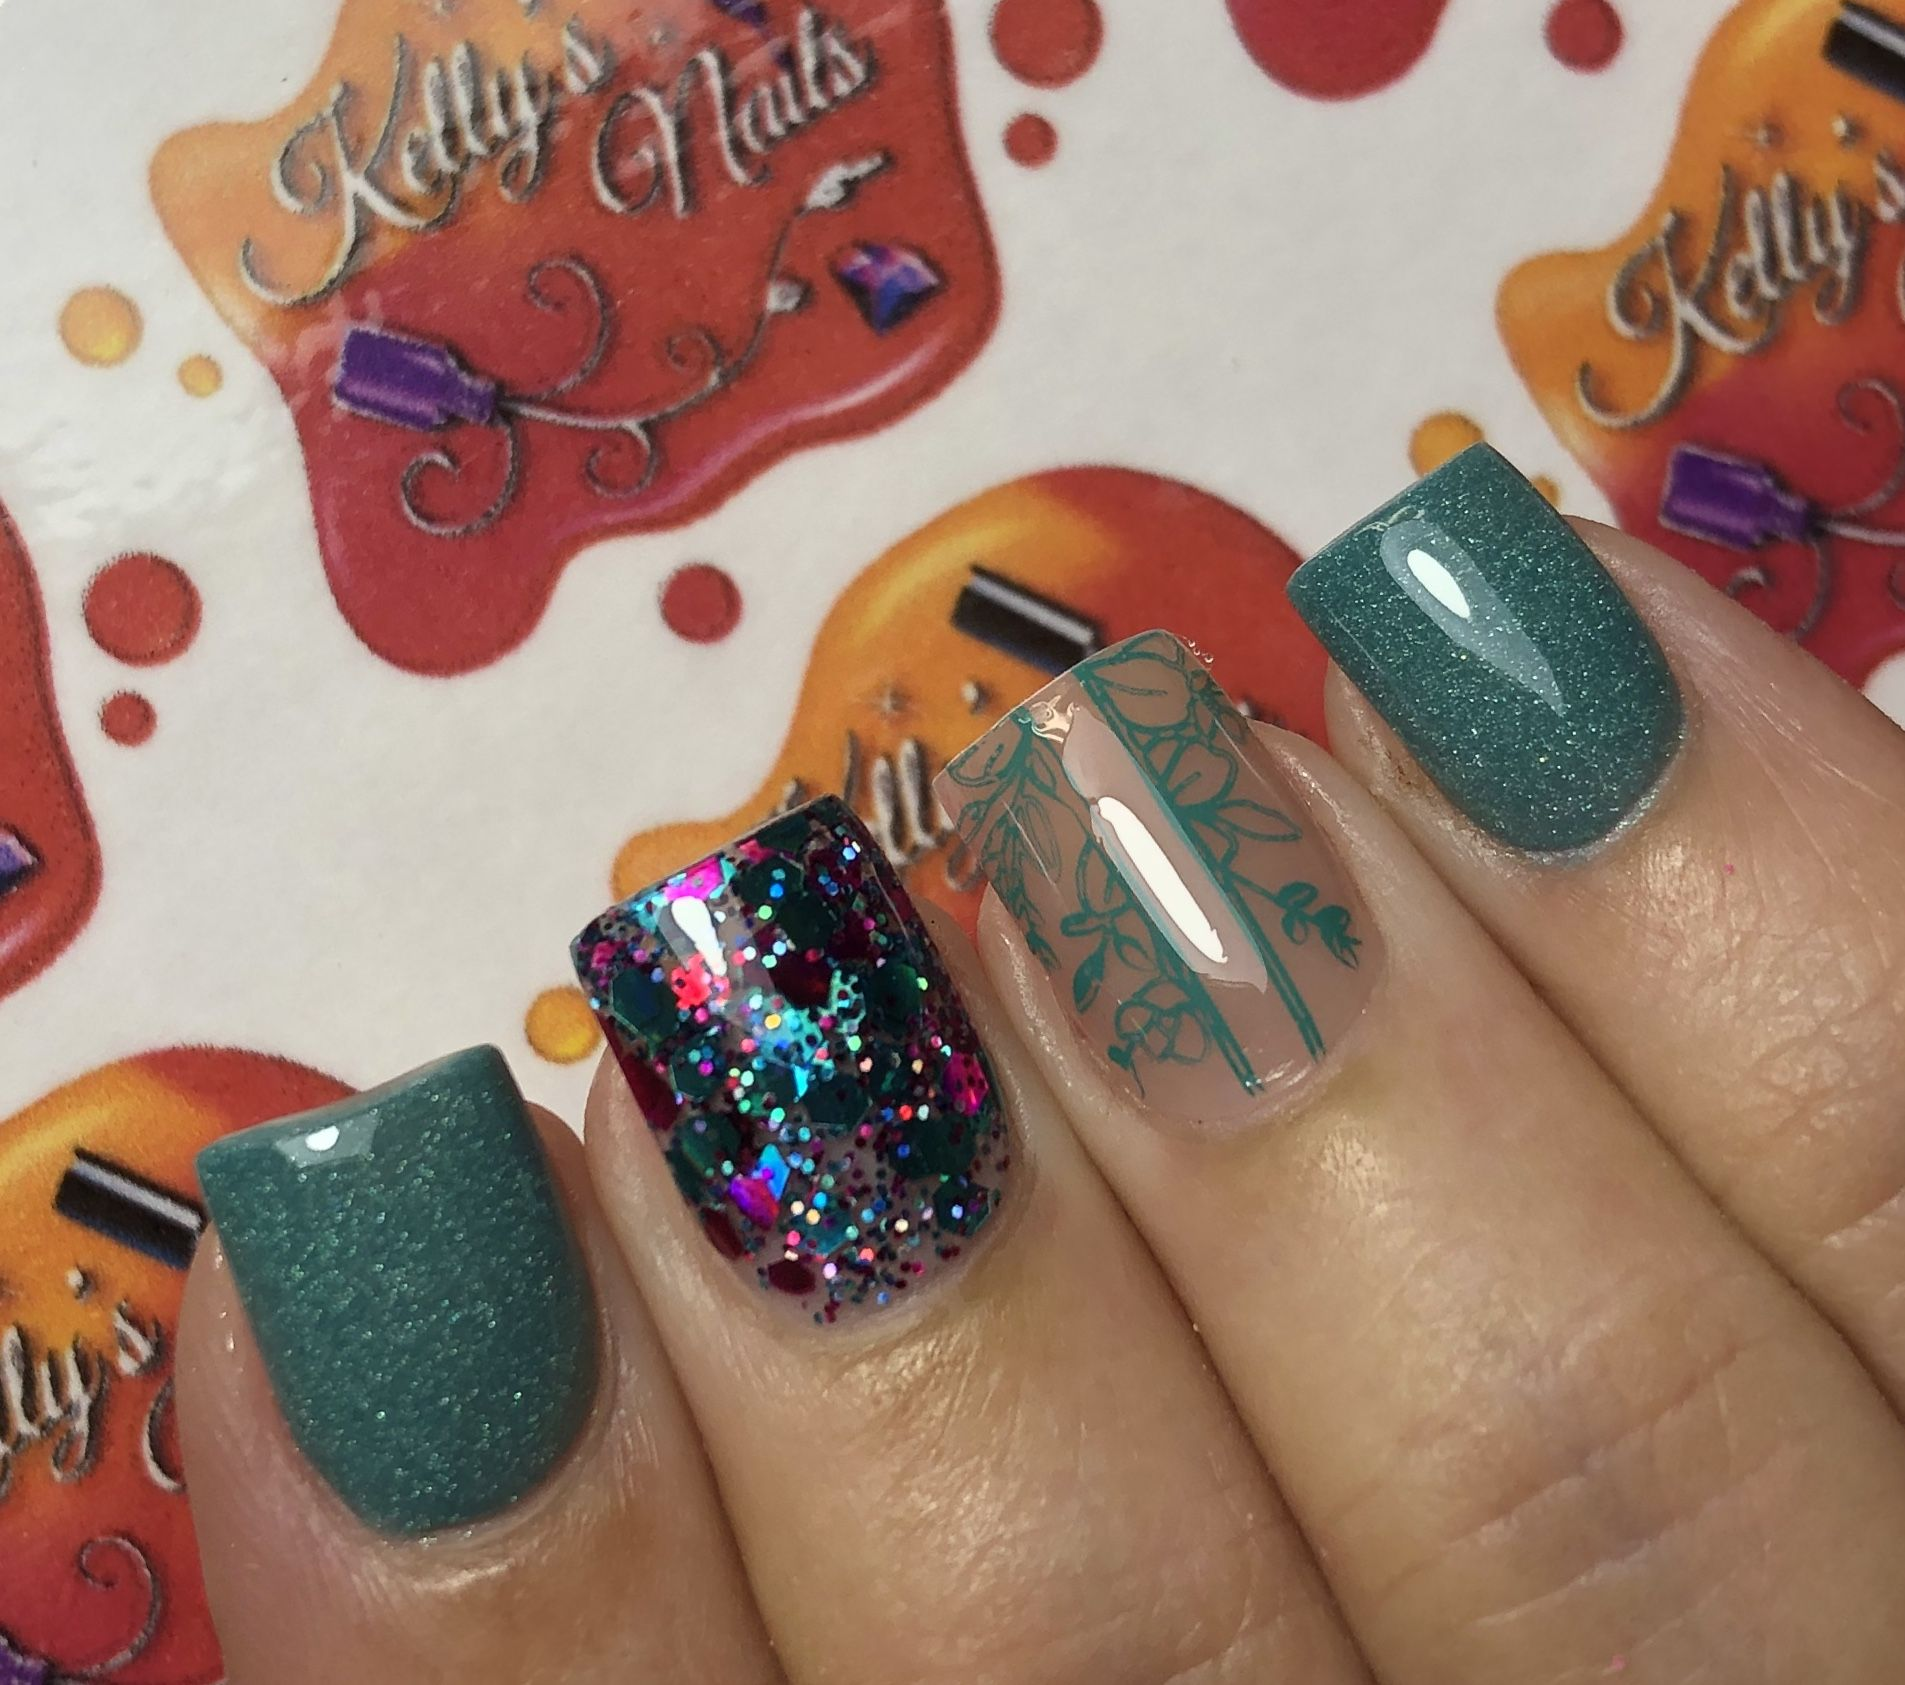 Pin by Kelly Lopez on Nails by Kelly   Nails, Beauty